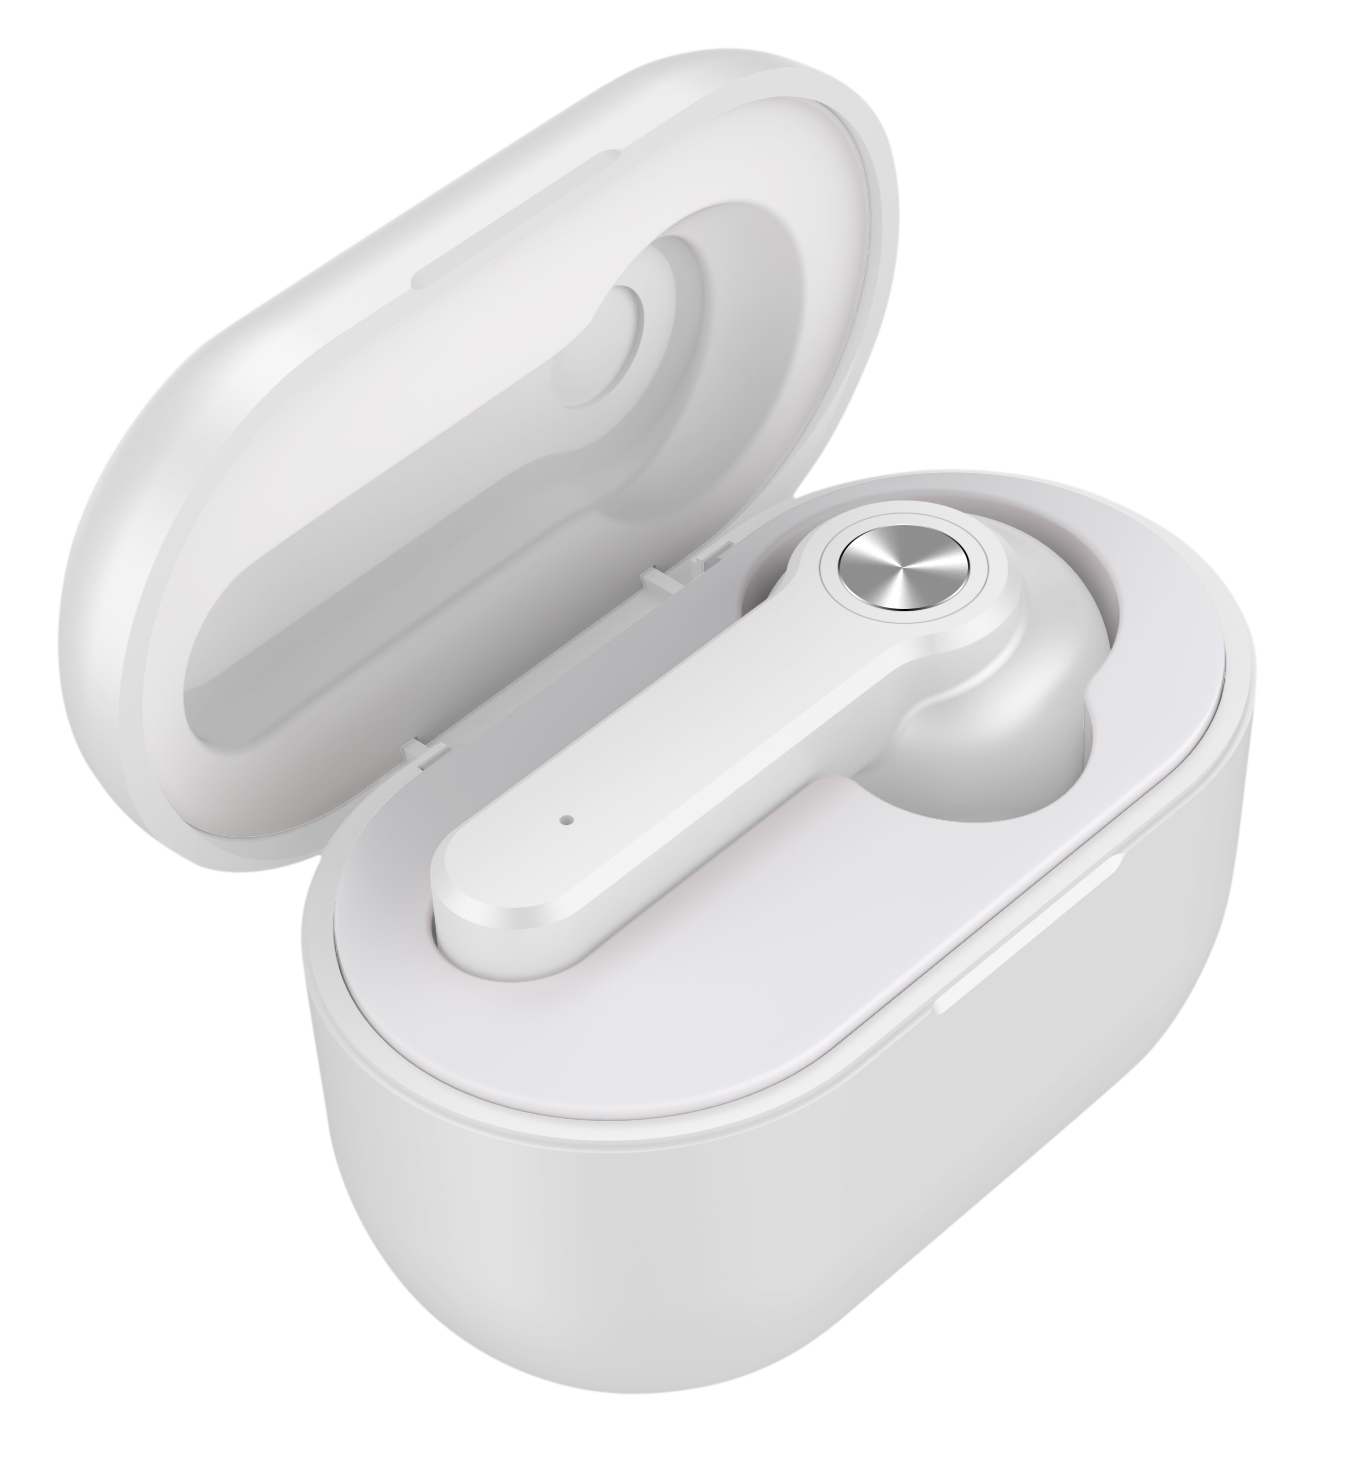 wireless bluetooth 5.0 mini In ear stereo Single ear earbuds with charging case